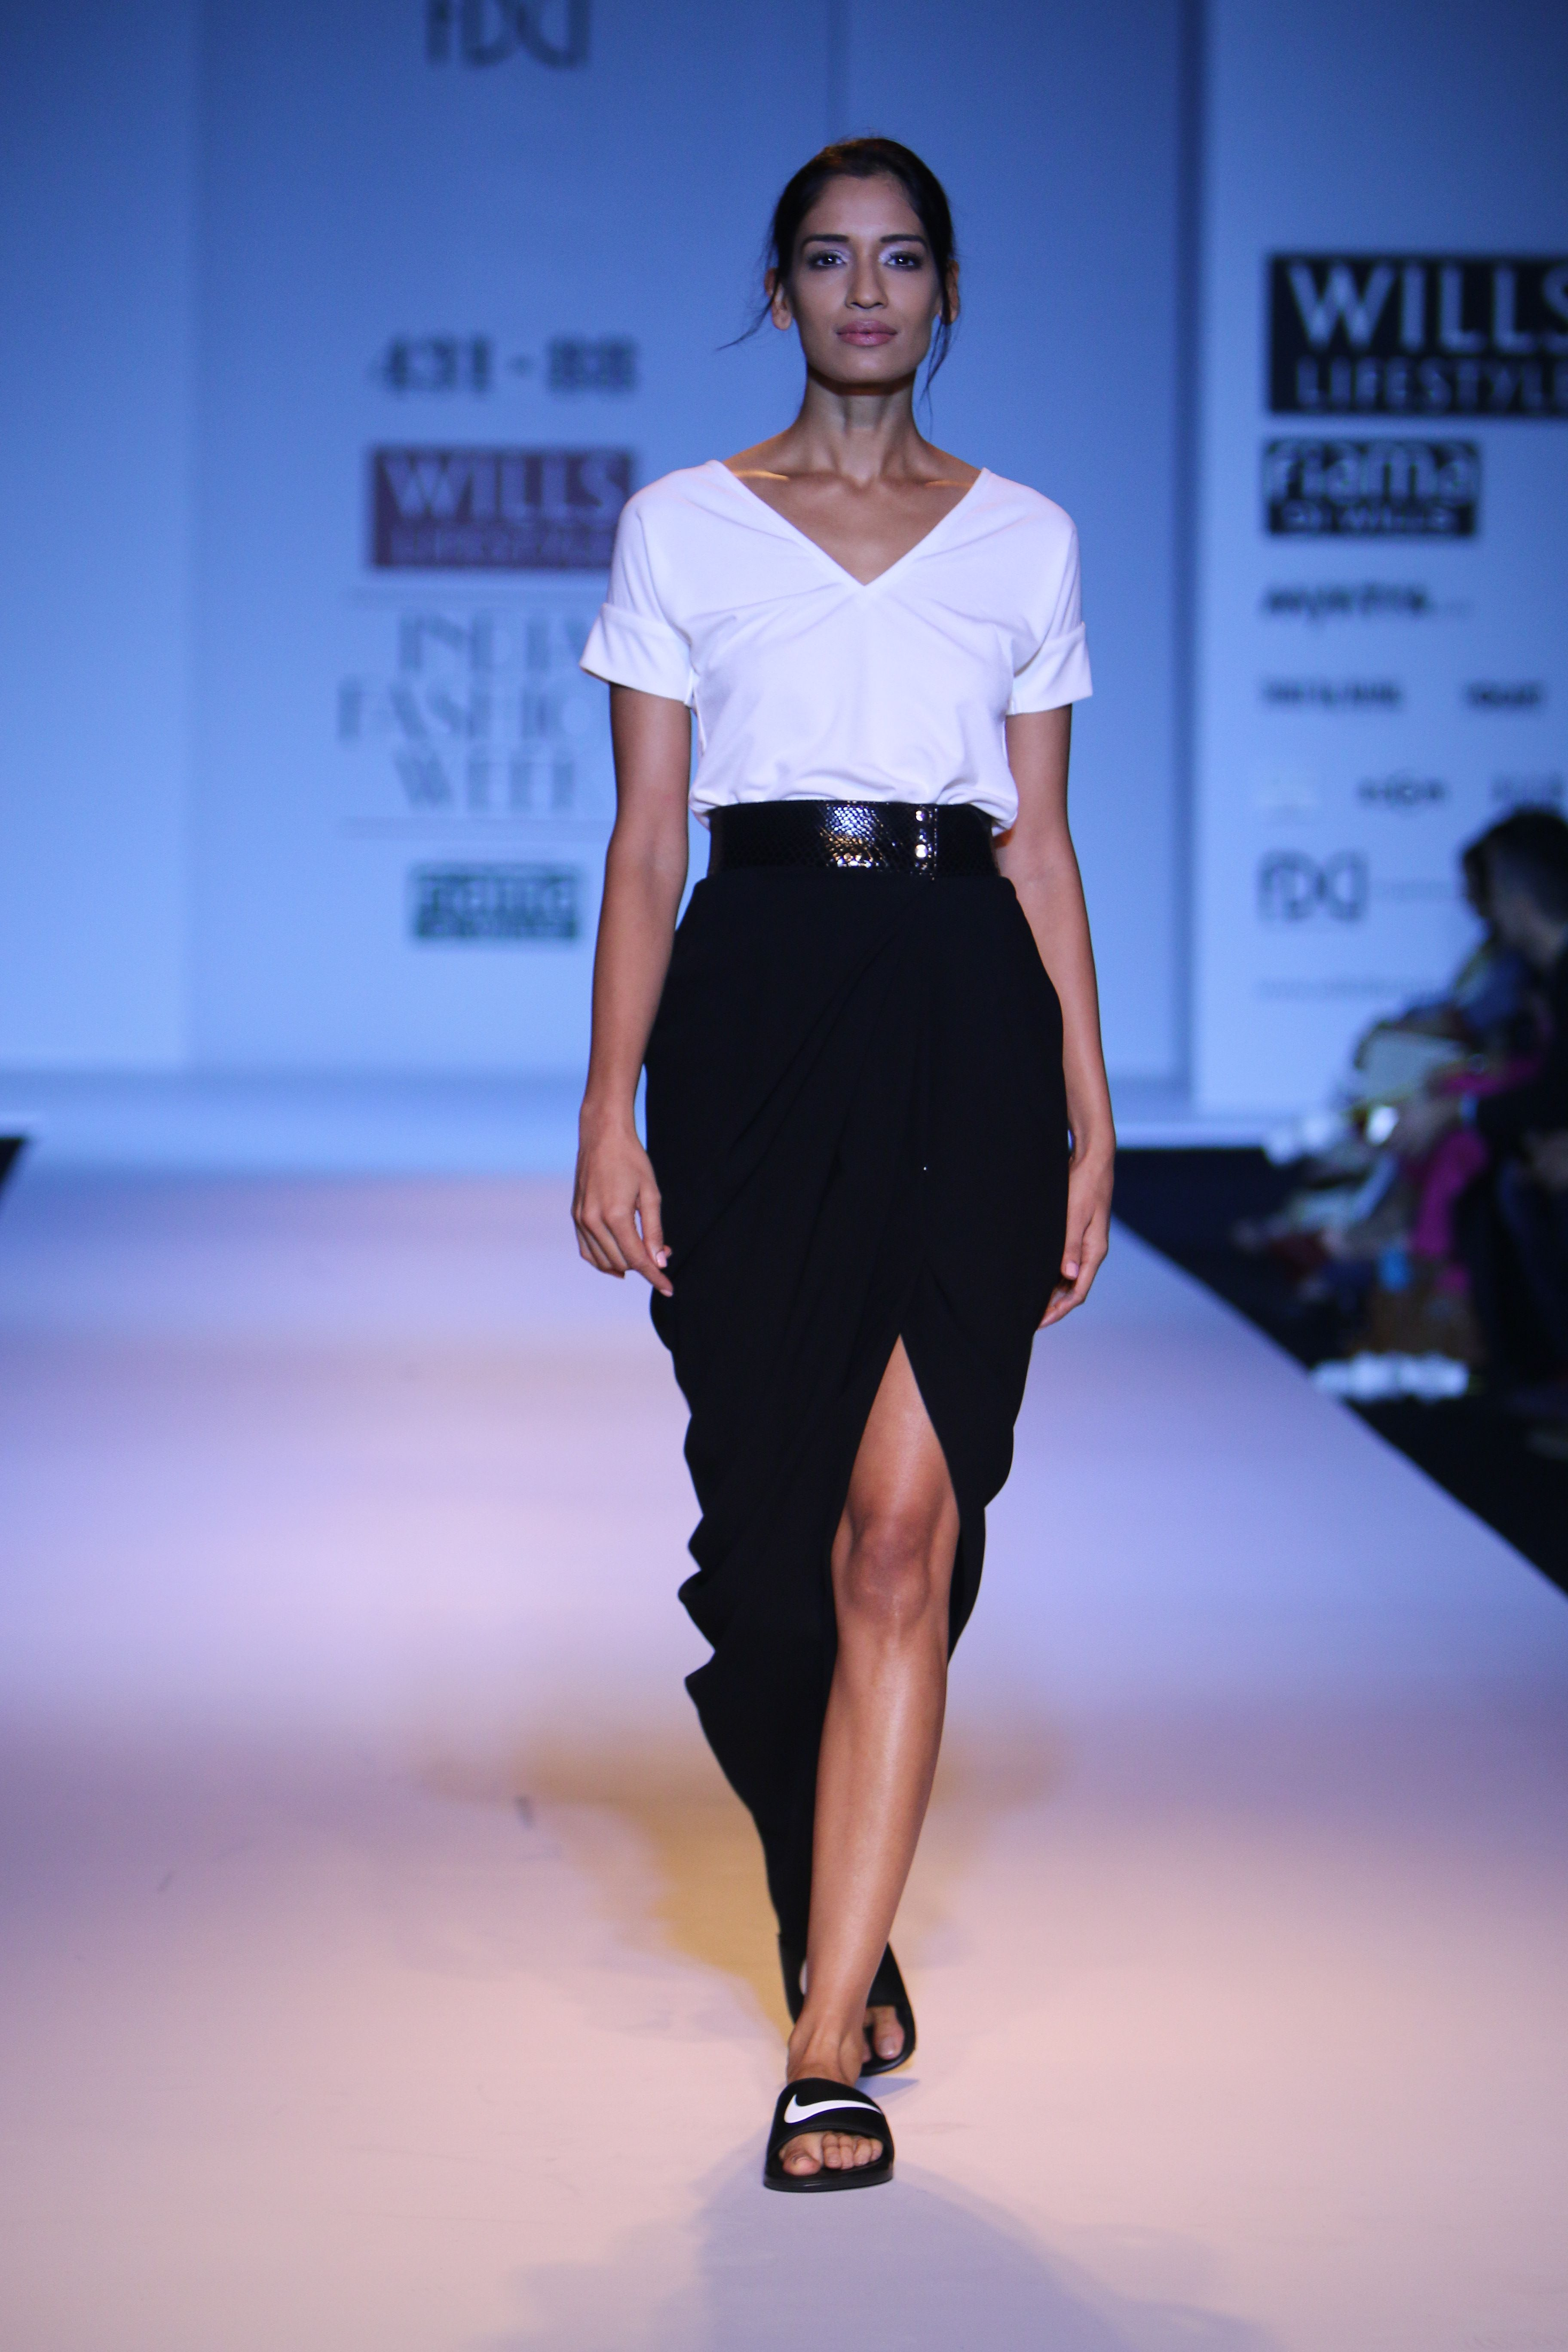 Design your own t shirt bangalore - V Shirt With Lungi Draped Skirt Shop Online From Www 431 88 Com